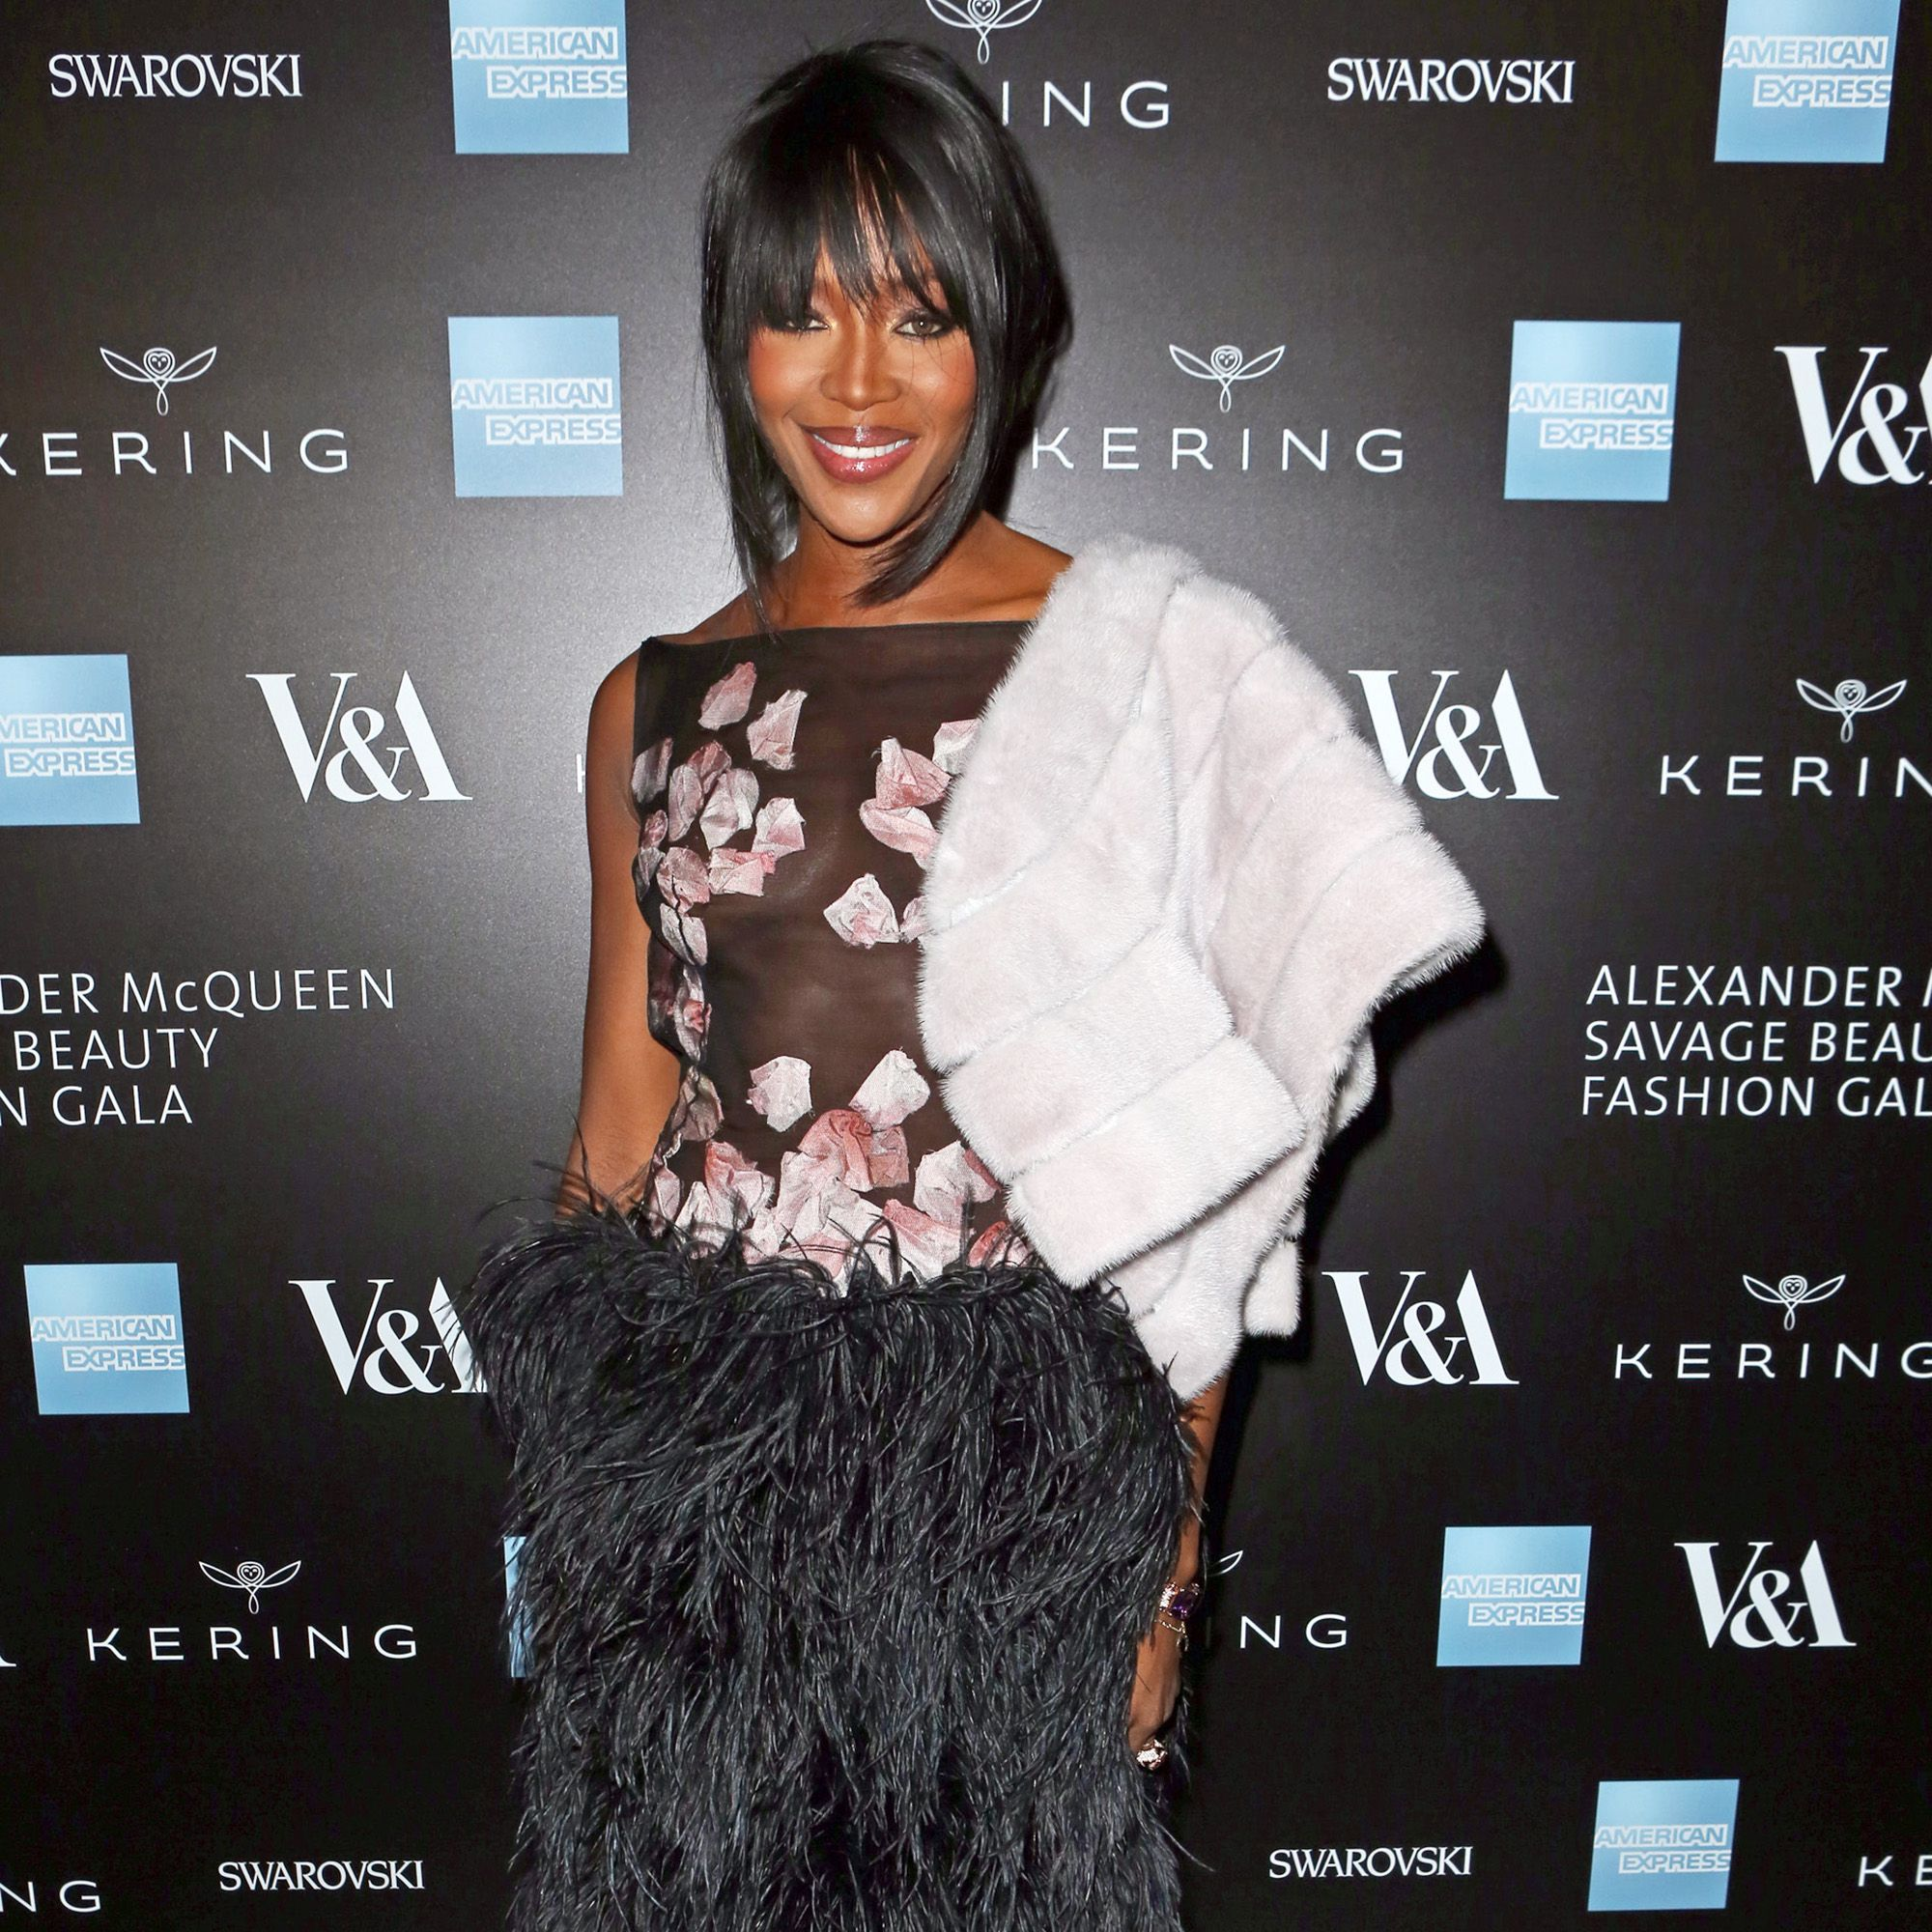 LONDON, ENGLAND - MARCH 12:  Naomi Campbell arrives at the Alexander McQueen: Savage Beauty Fashion Gala at the V&amp&#x3B;A, presented by American Express and Kering on March 12, 2015 in London, England.  (Photo by David M. Benett/Getty Images for Victoria and Albert Museum)